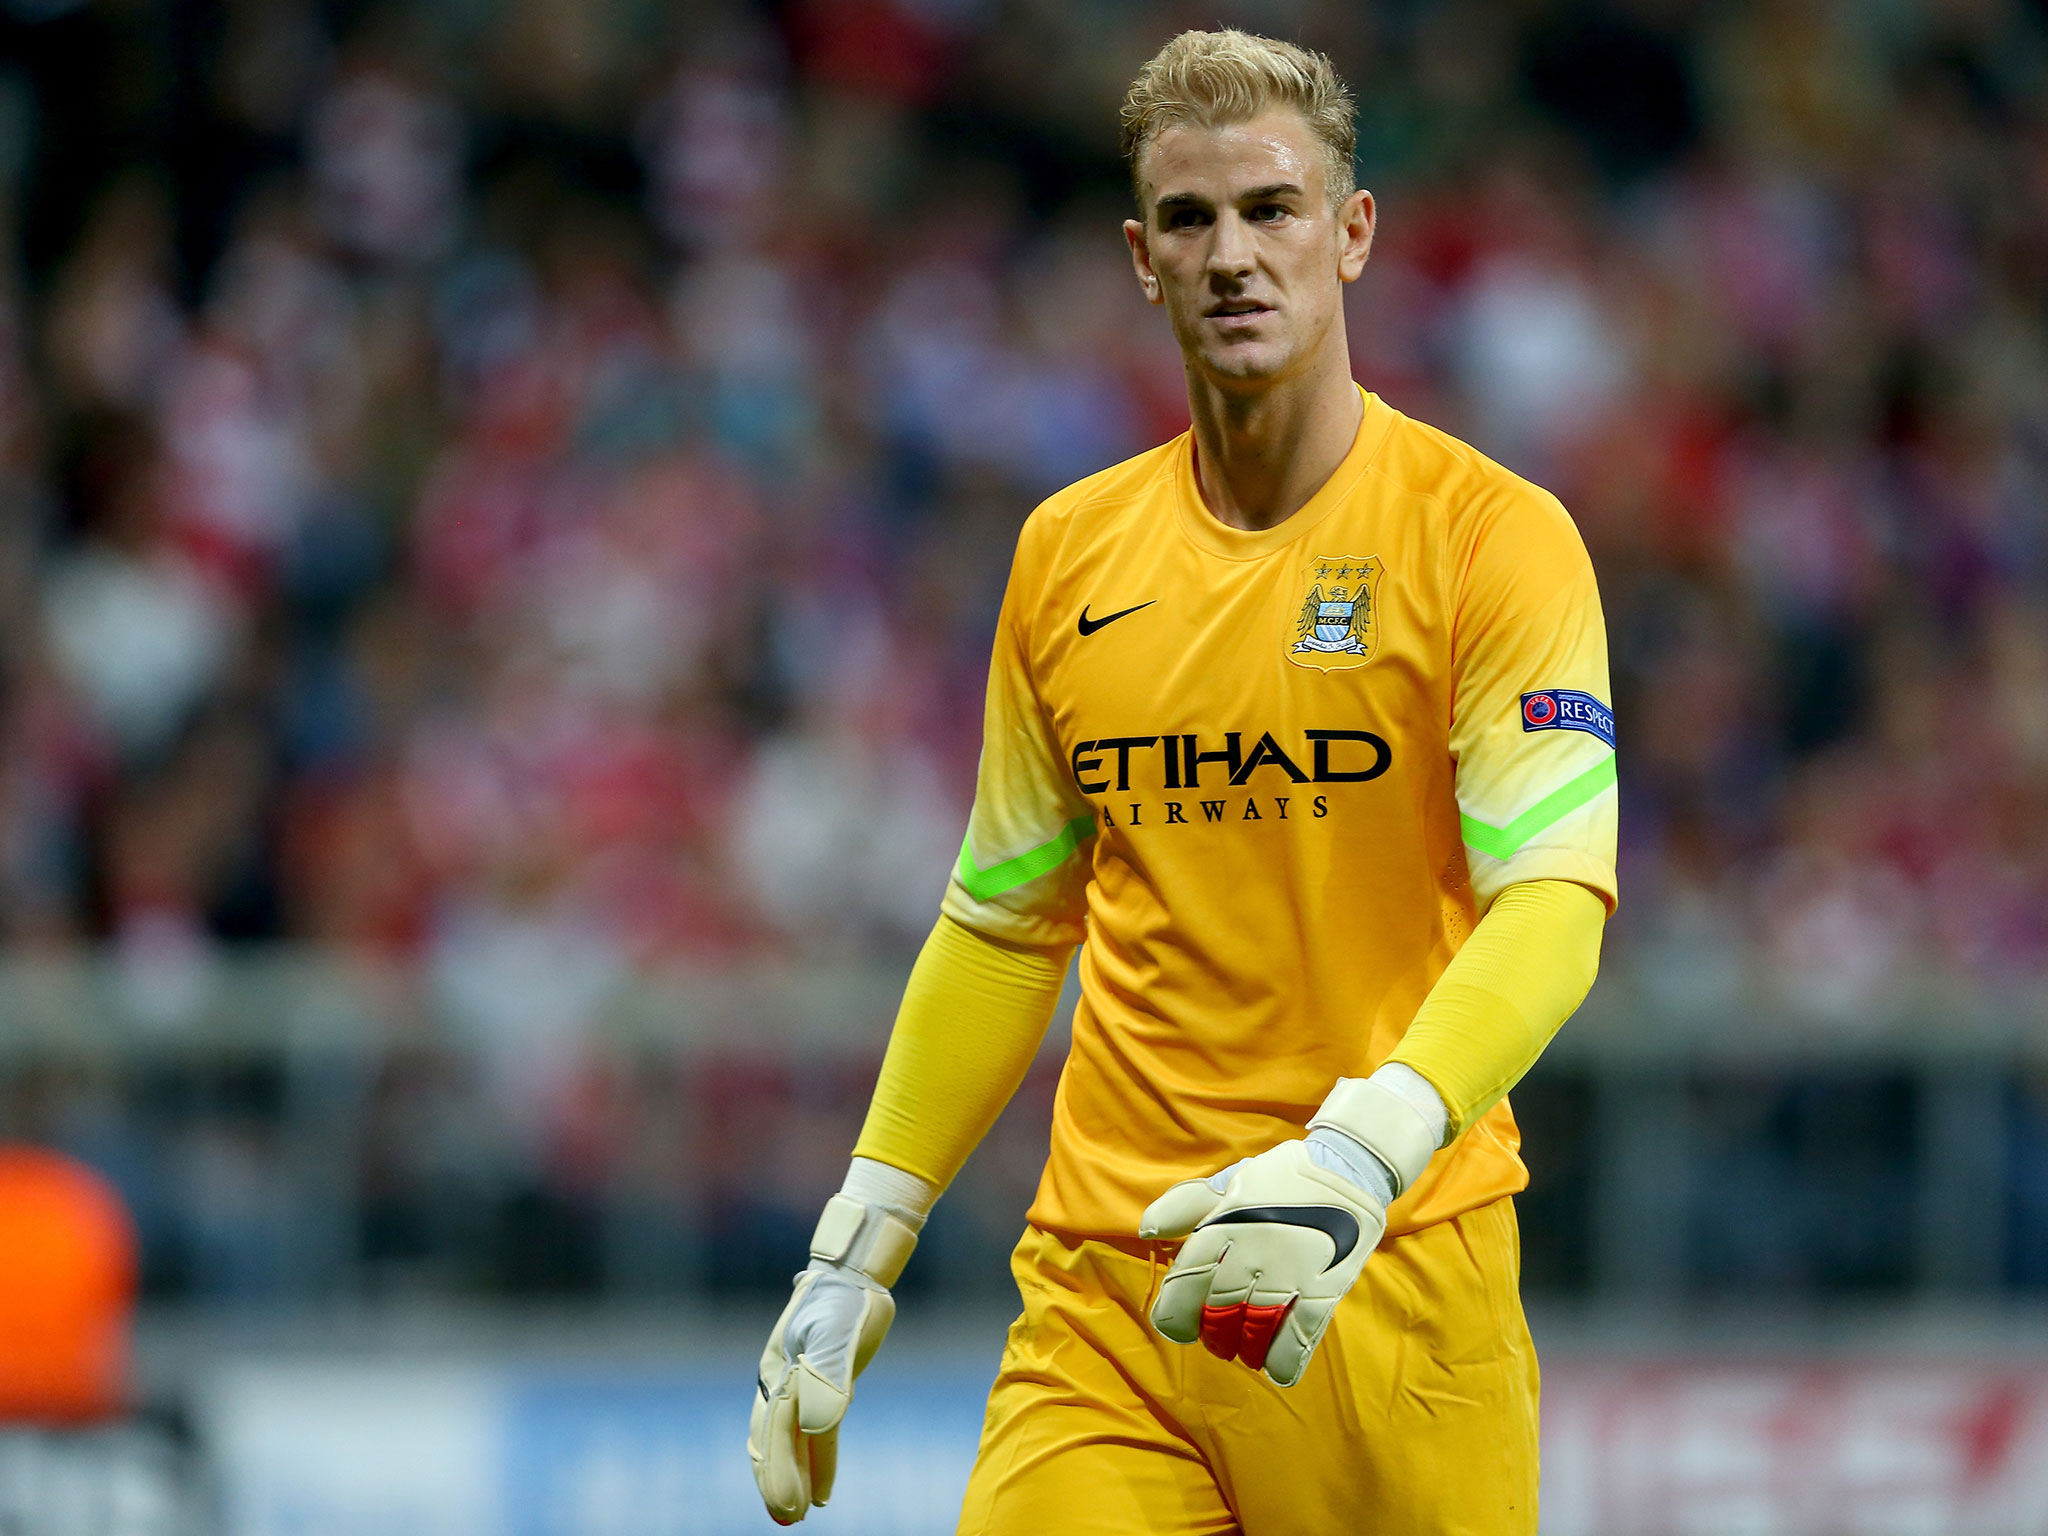 Manchester City F.C. goalkeeper Joe Hart has put pen to paper on a new long-term deal at the Etihad Stadium.